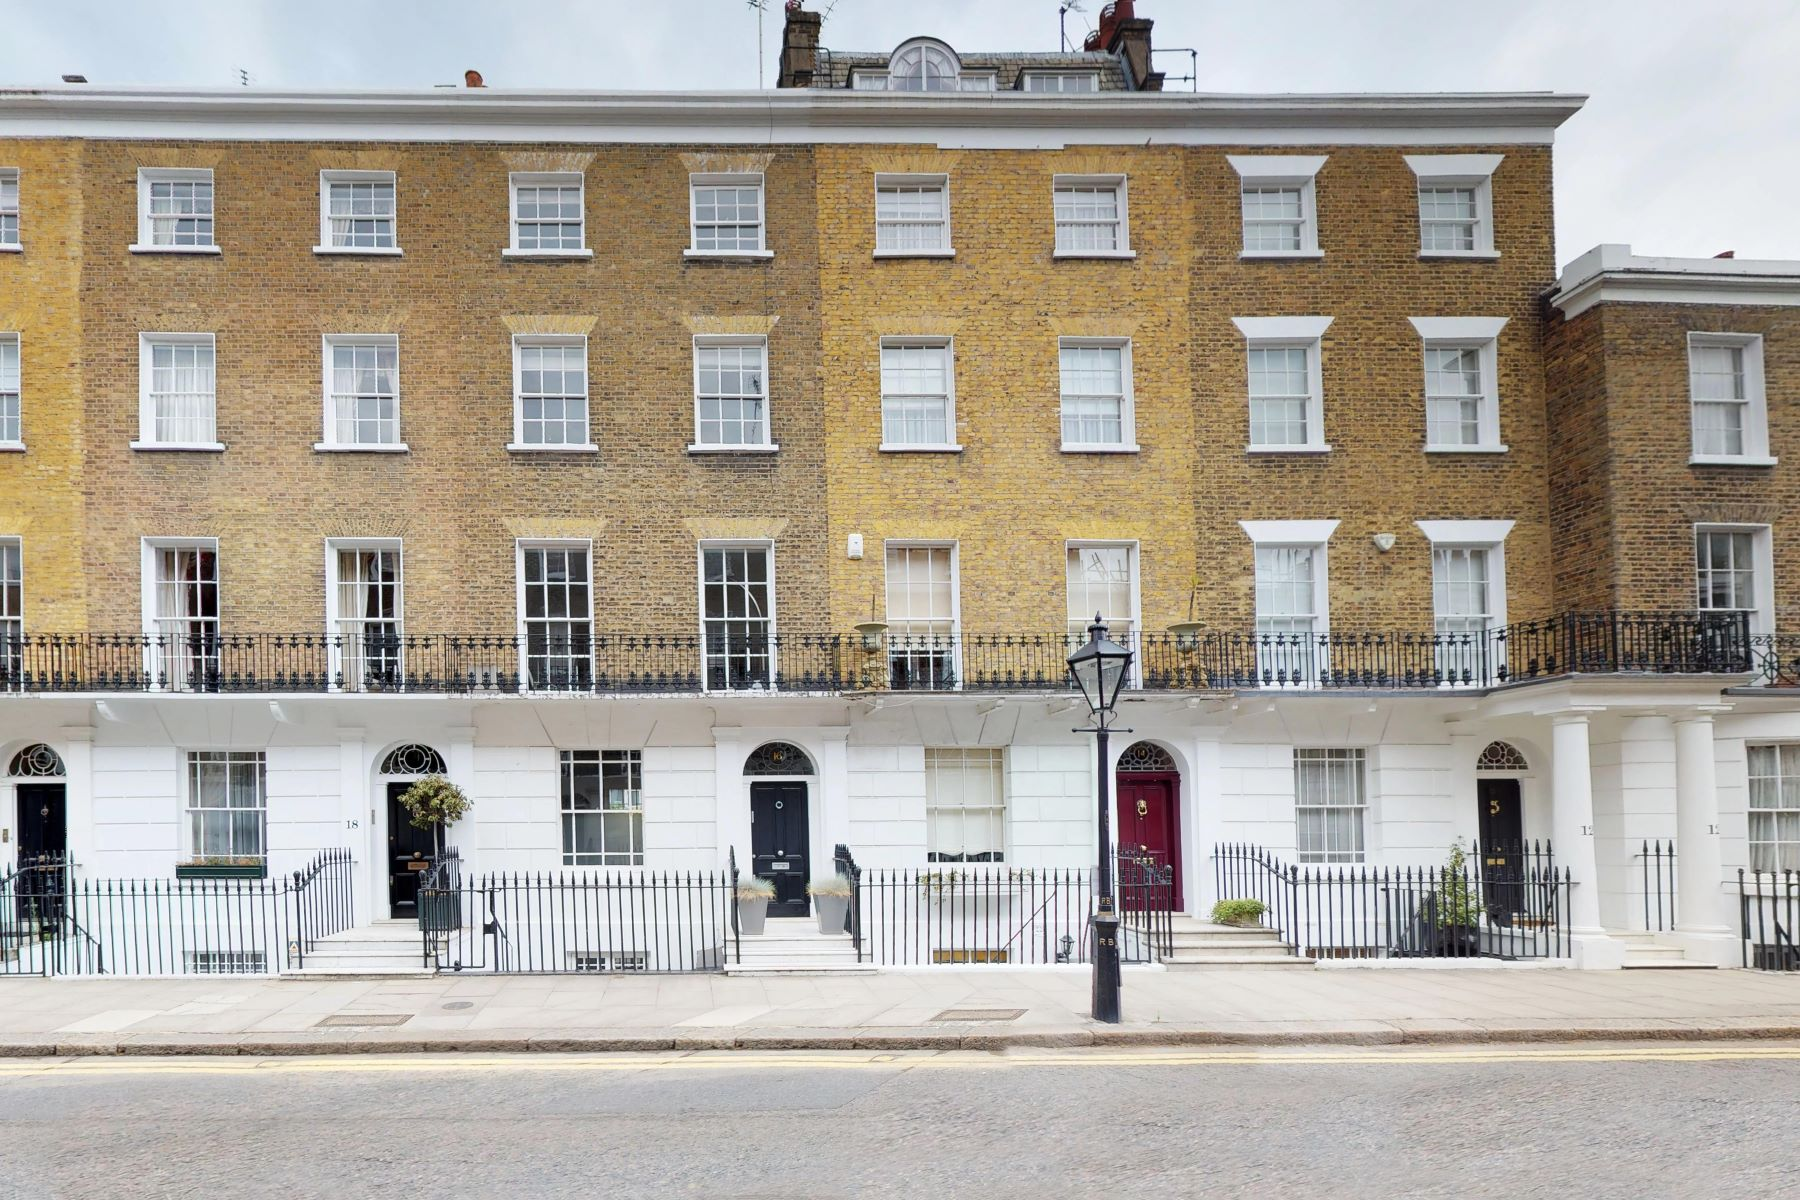 townhouses for Sale at Alexander Place, South Kensington, SW7 16 Alexander Place Other England, England SW7 2SF United Kingdom